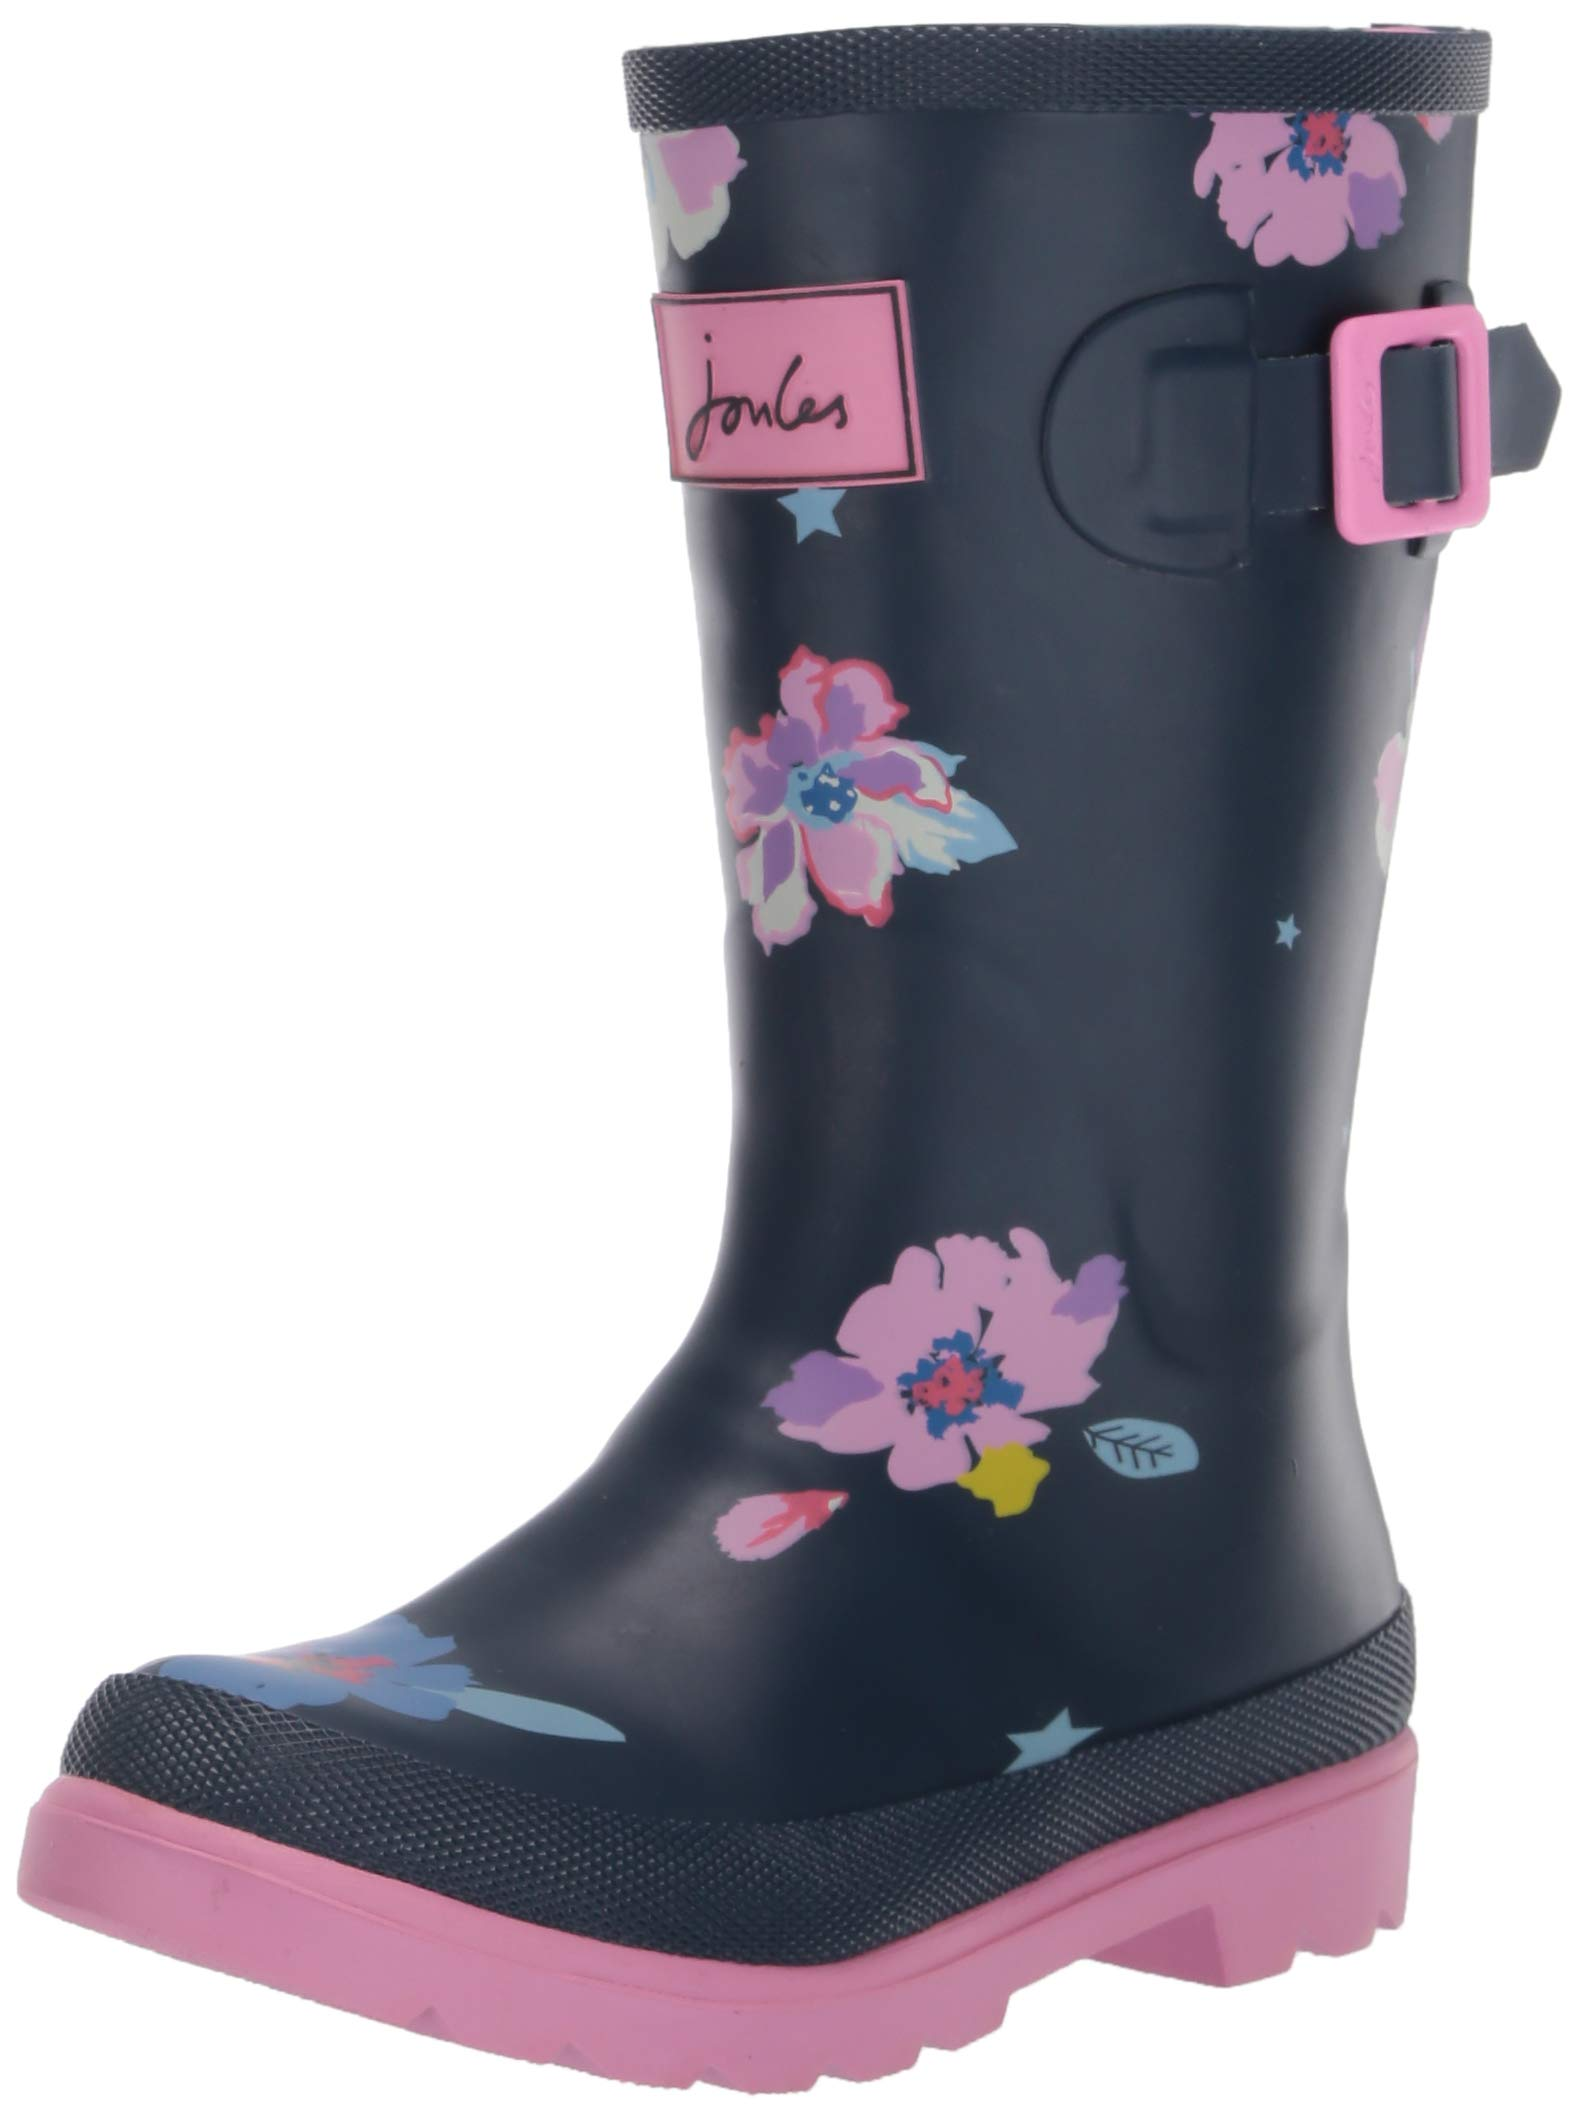 Joules Girls' JNR Welly Print Rain Boot Blue Confetti Floral 3 M US Little Kid